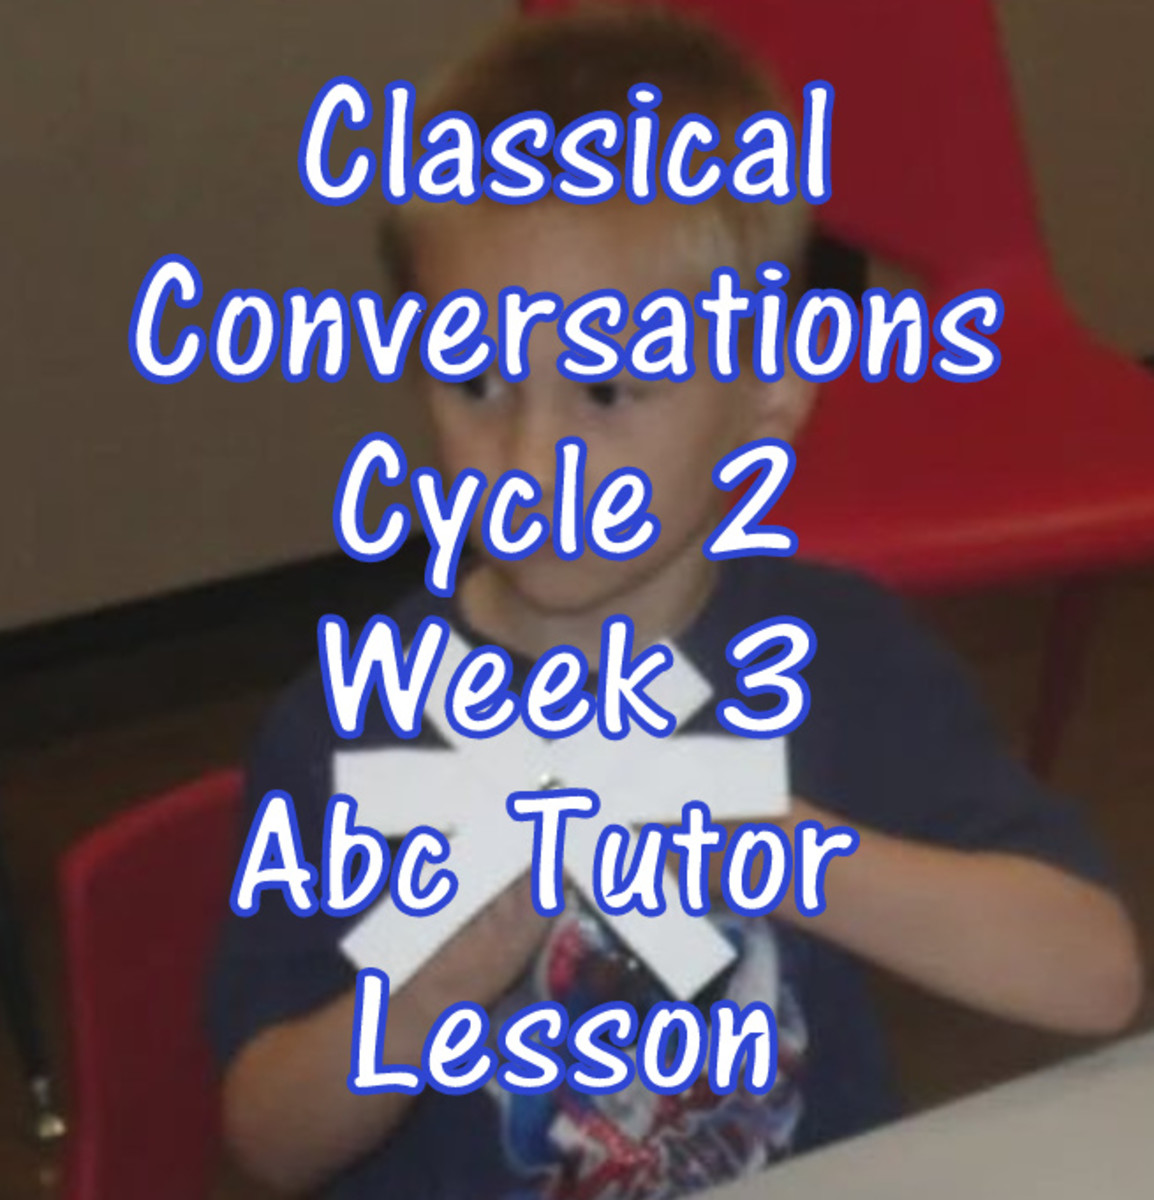 CC Cycle 2 Week 3 Lesson for Abecedarian Tutors